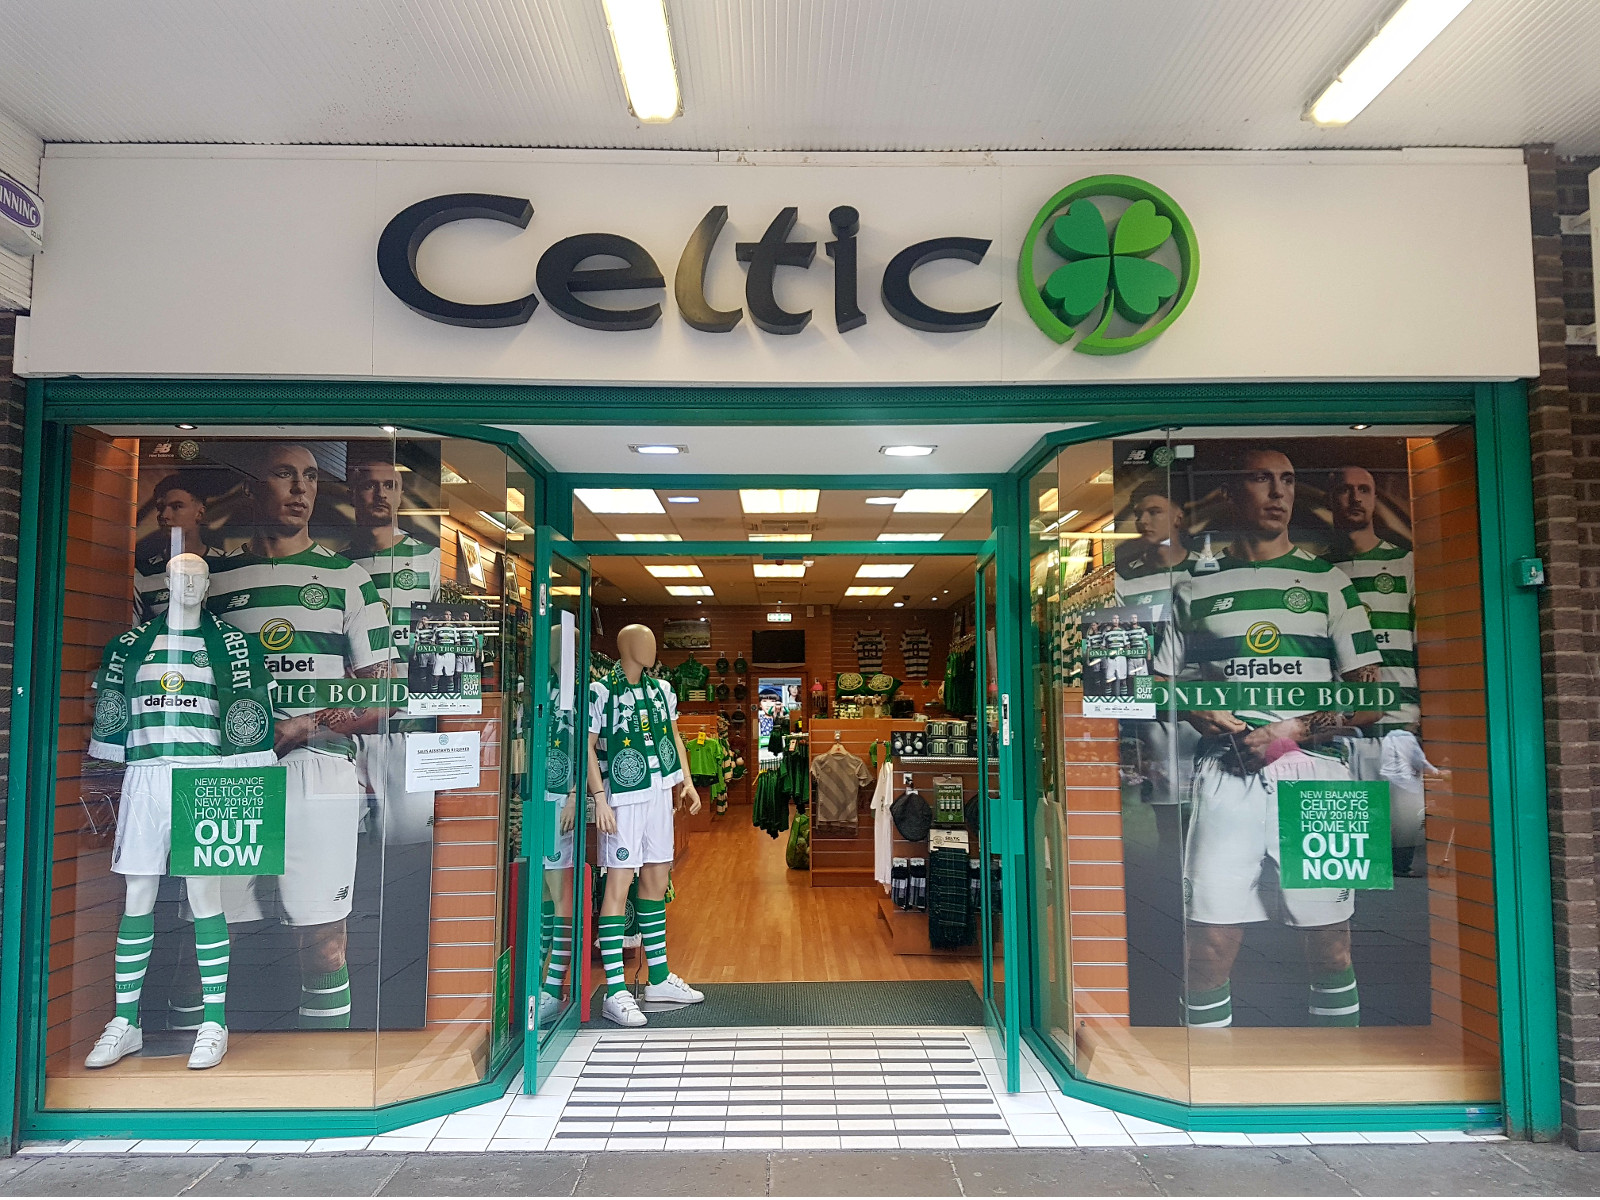 celtic fc store usa